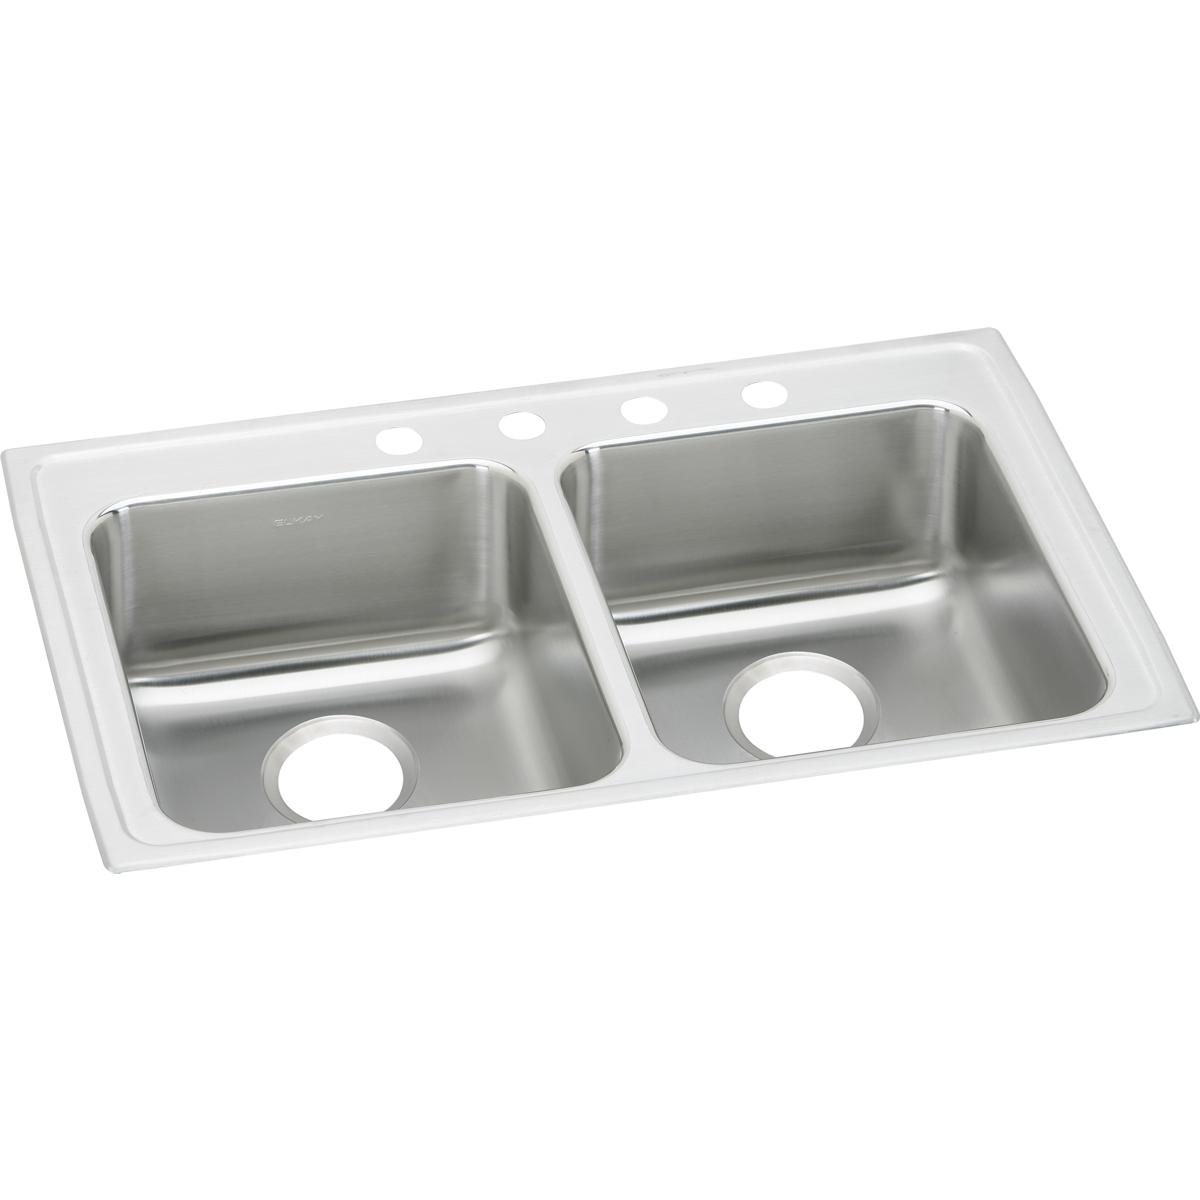 "Elkay Lustertone Classic Stainless Steel 33"" x 19-1/2"" x 6-1/2"", Equal Double Bowl Drop-in ADA Sink"